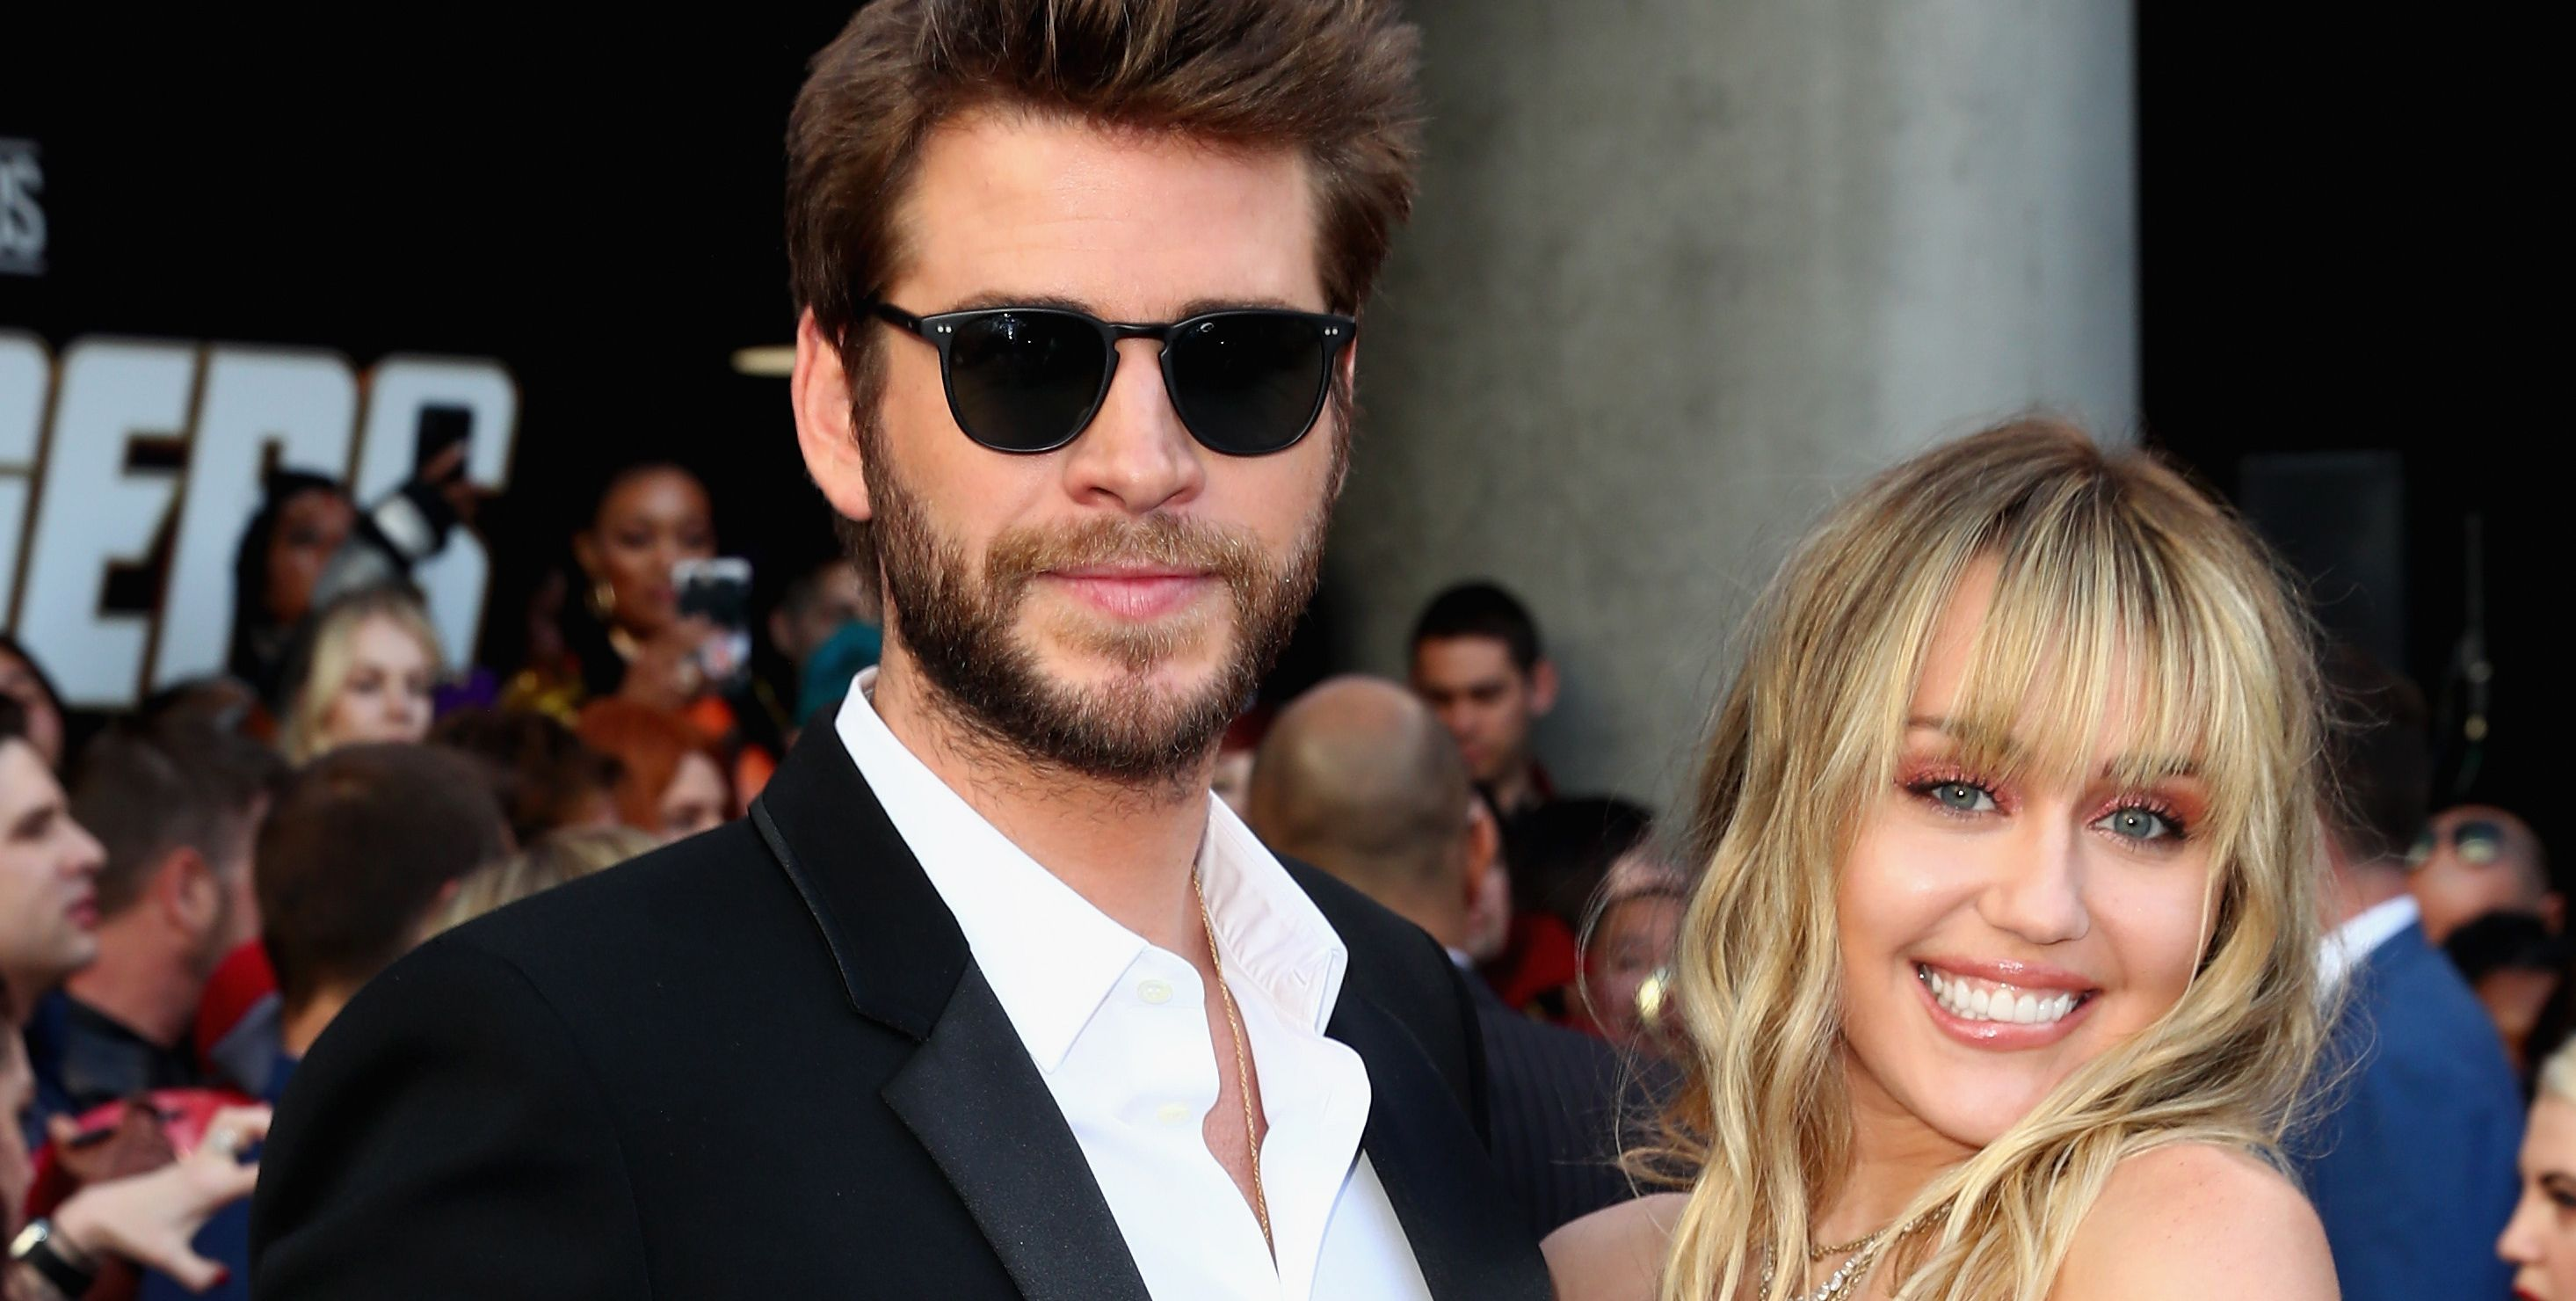 Miley Cyrus and Liam Hemsworth Showed Up to 'Avengers: Endgame' Looking Super-Sexy